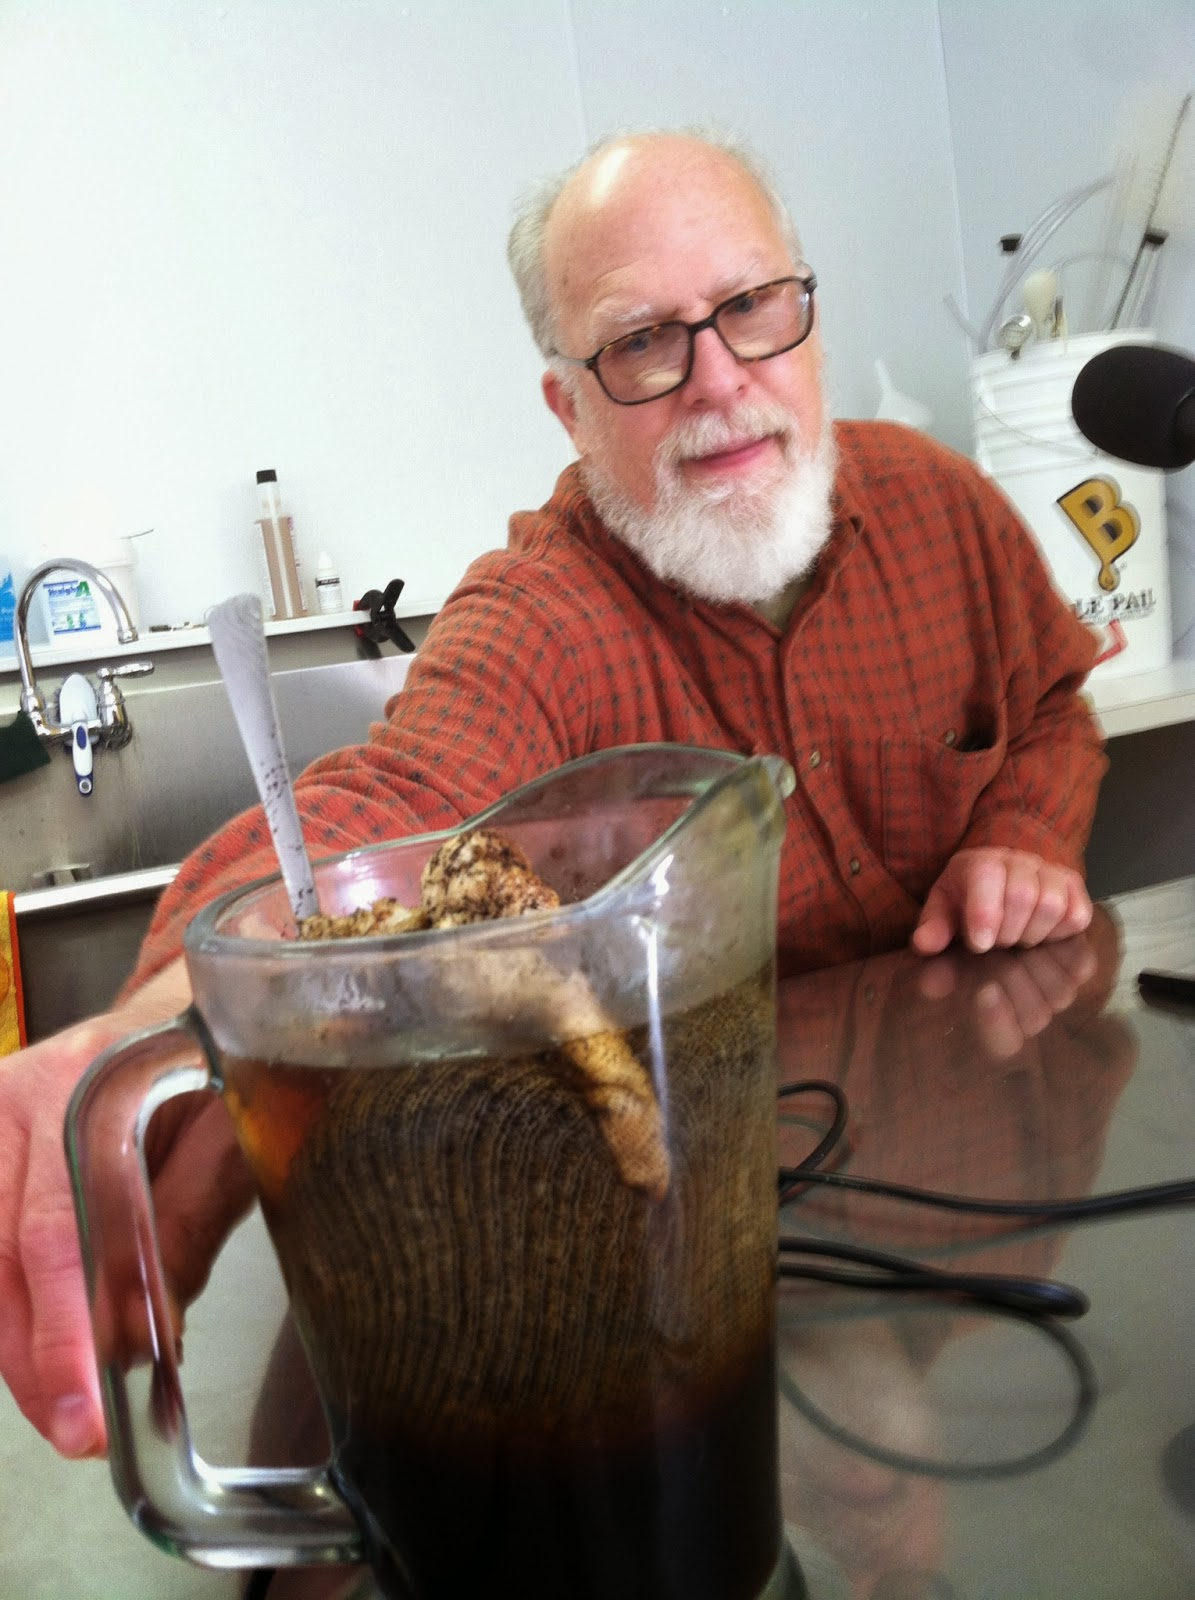 Doug Griffith displays a pitcher of cold brewed coffee